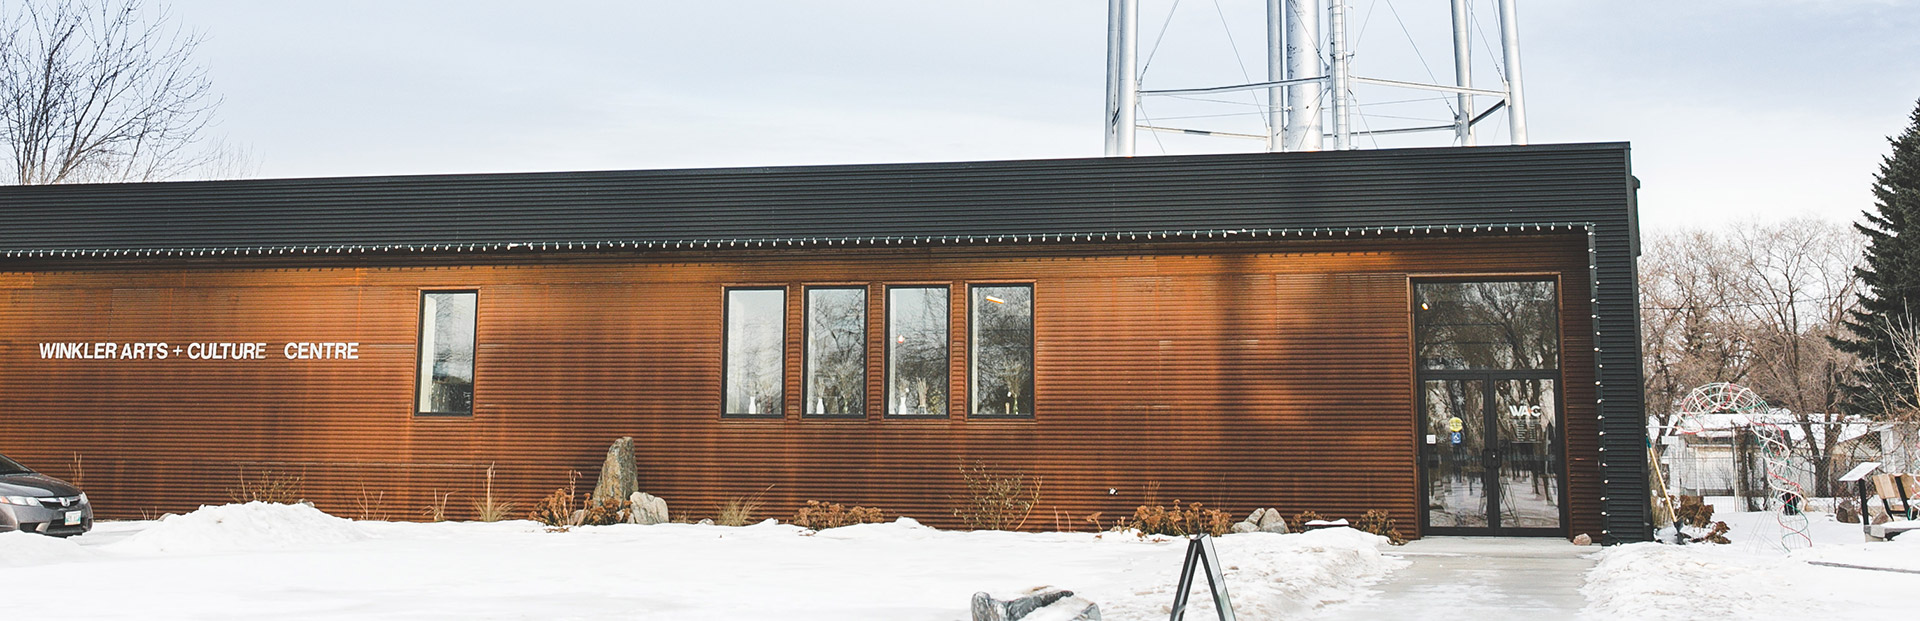 Winkler arts and culture front exterior in winter